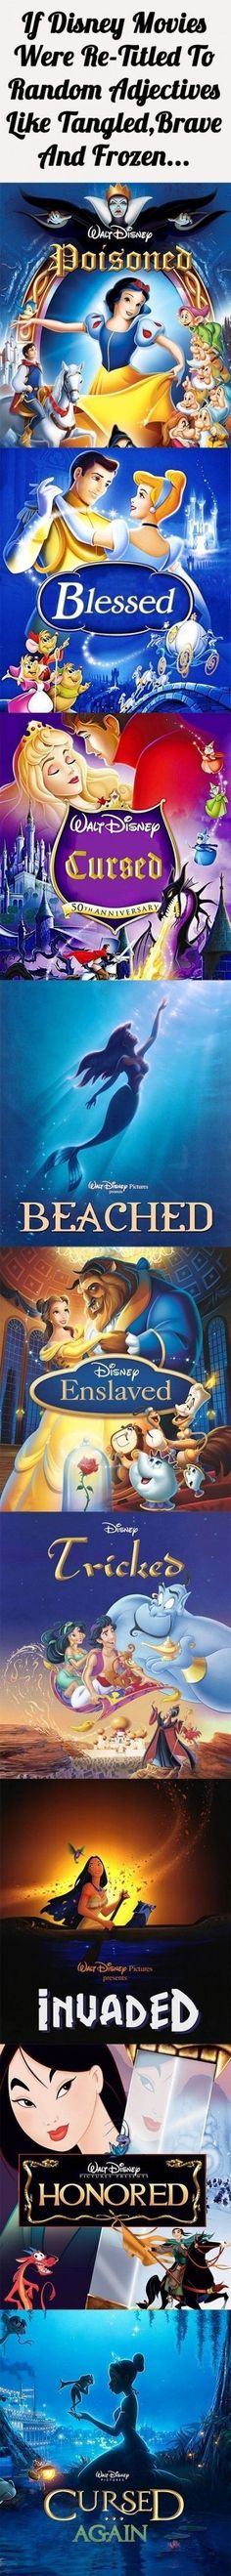 If Disney movies were re-titled to adjectives like Tangled, Brave, and Frozen #LOL #Hilarious